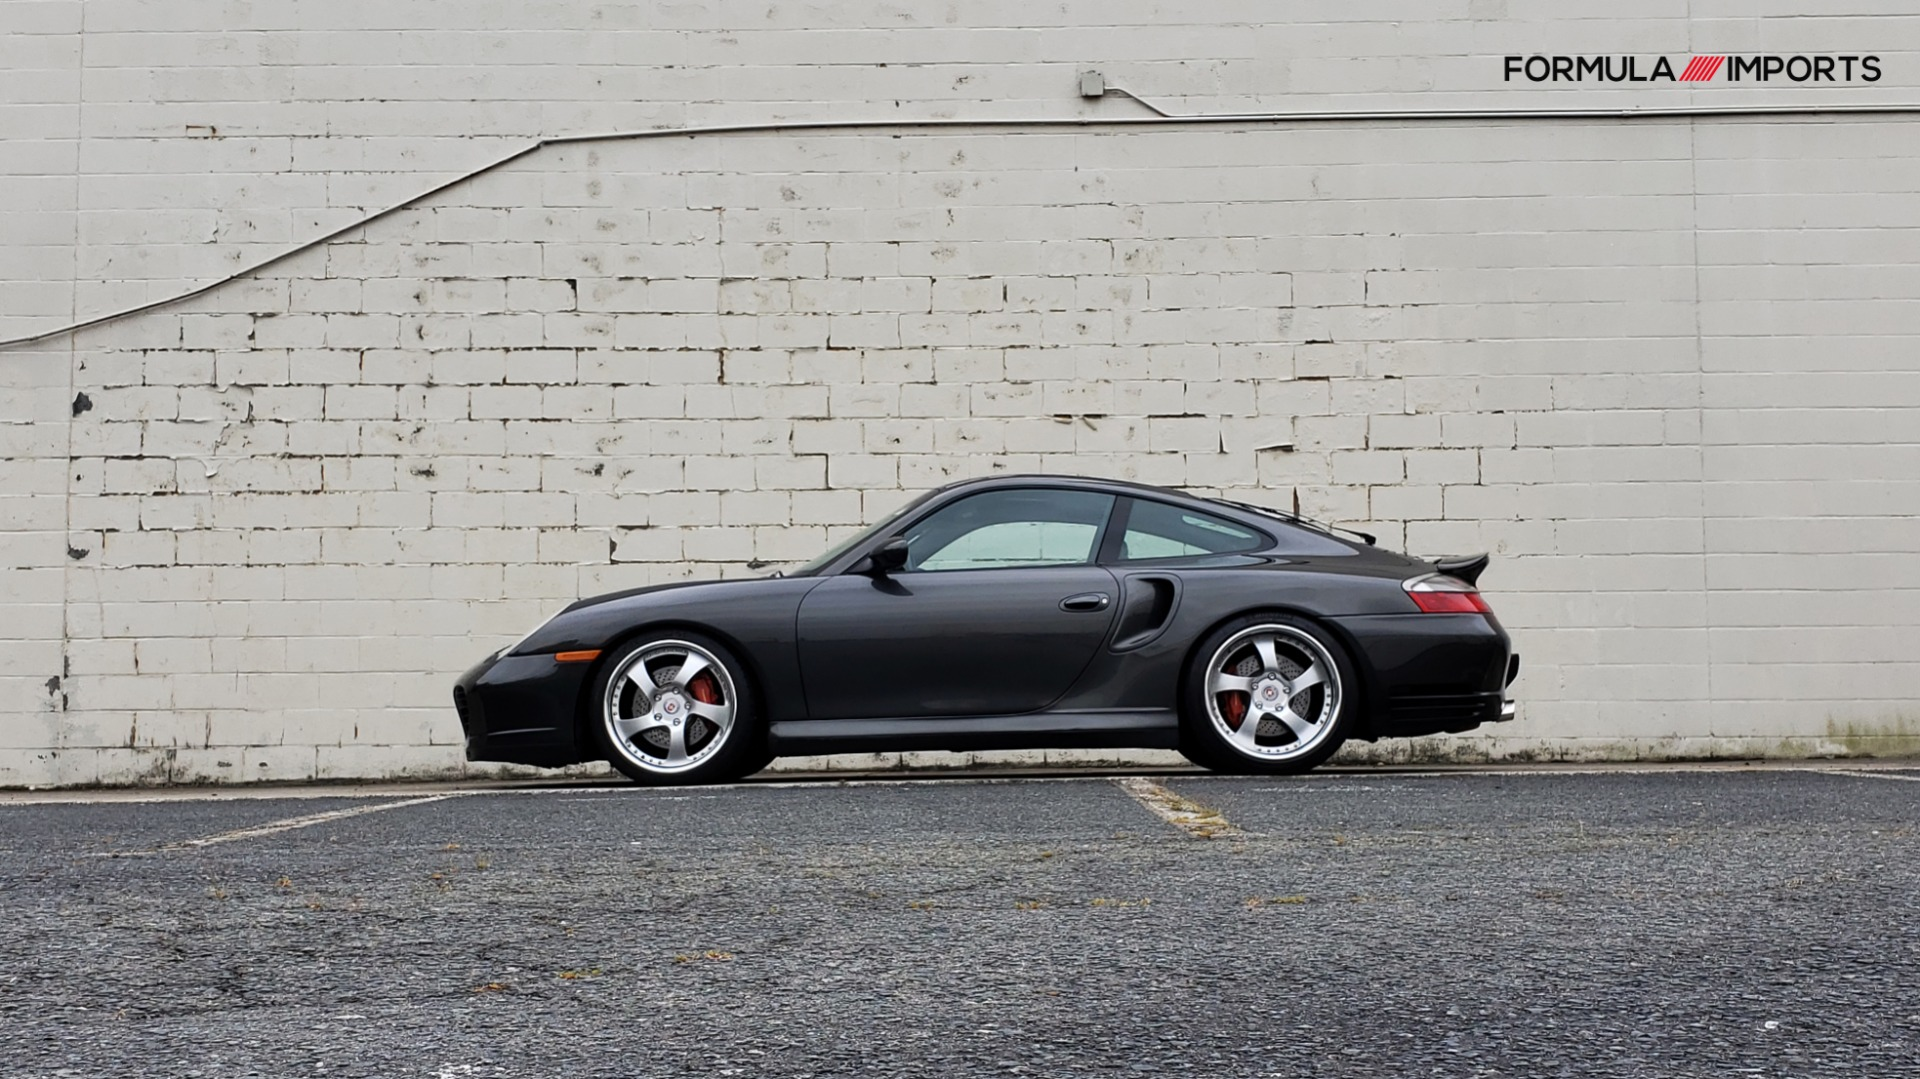 Used 2002 Porsche 911 CARRERA TURBO COUPE / 6-SPD MANUAL / PERF UPGRADES & CUSTOM TUNE for sale Sold at Formula Imports in Charlotte NC 28227 79